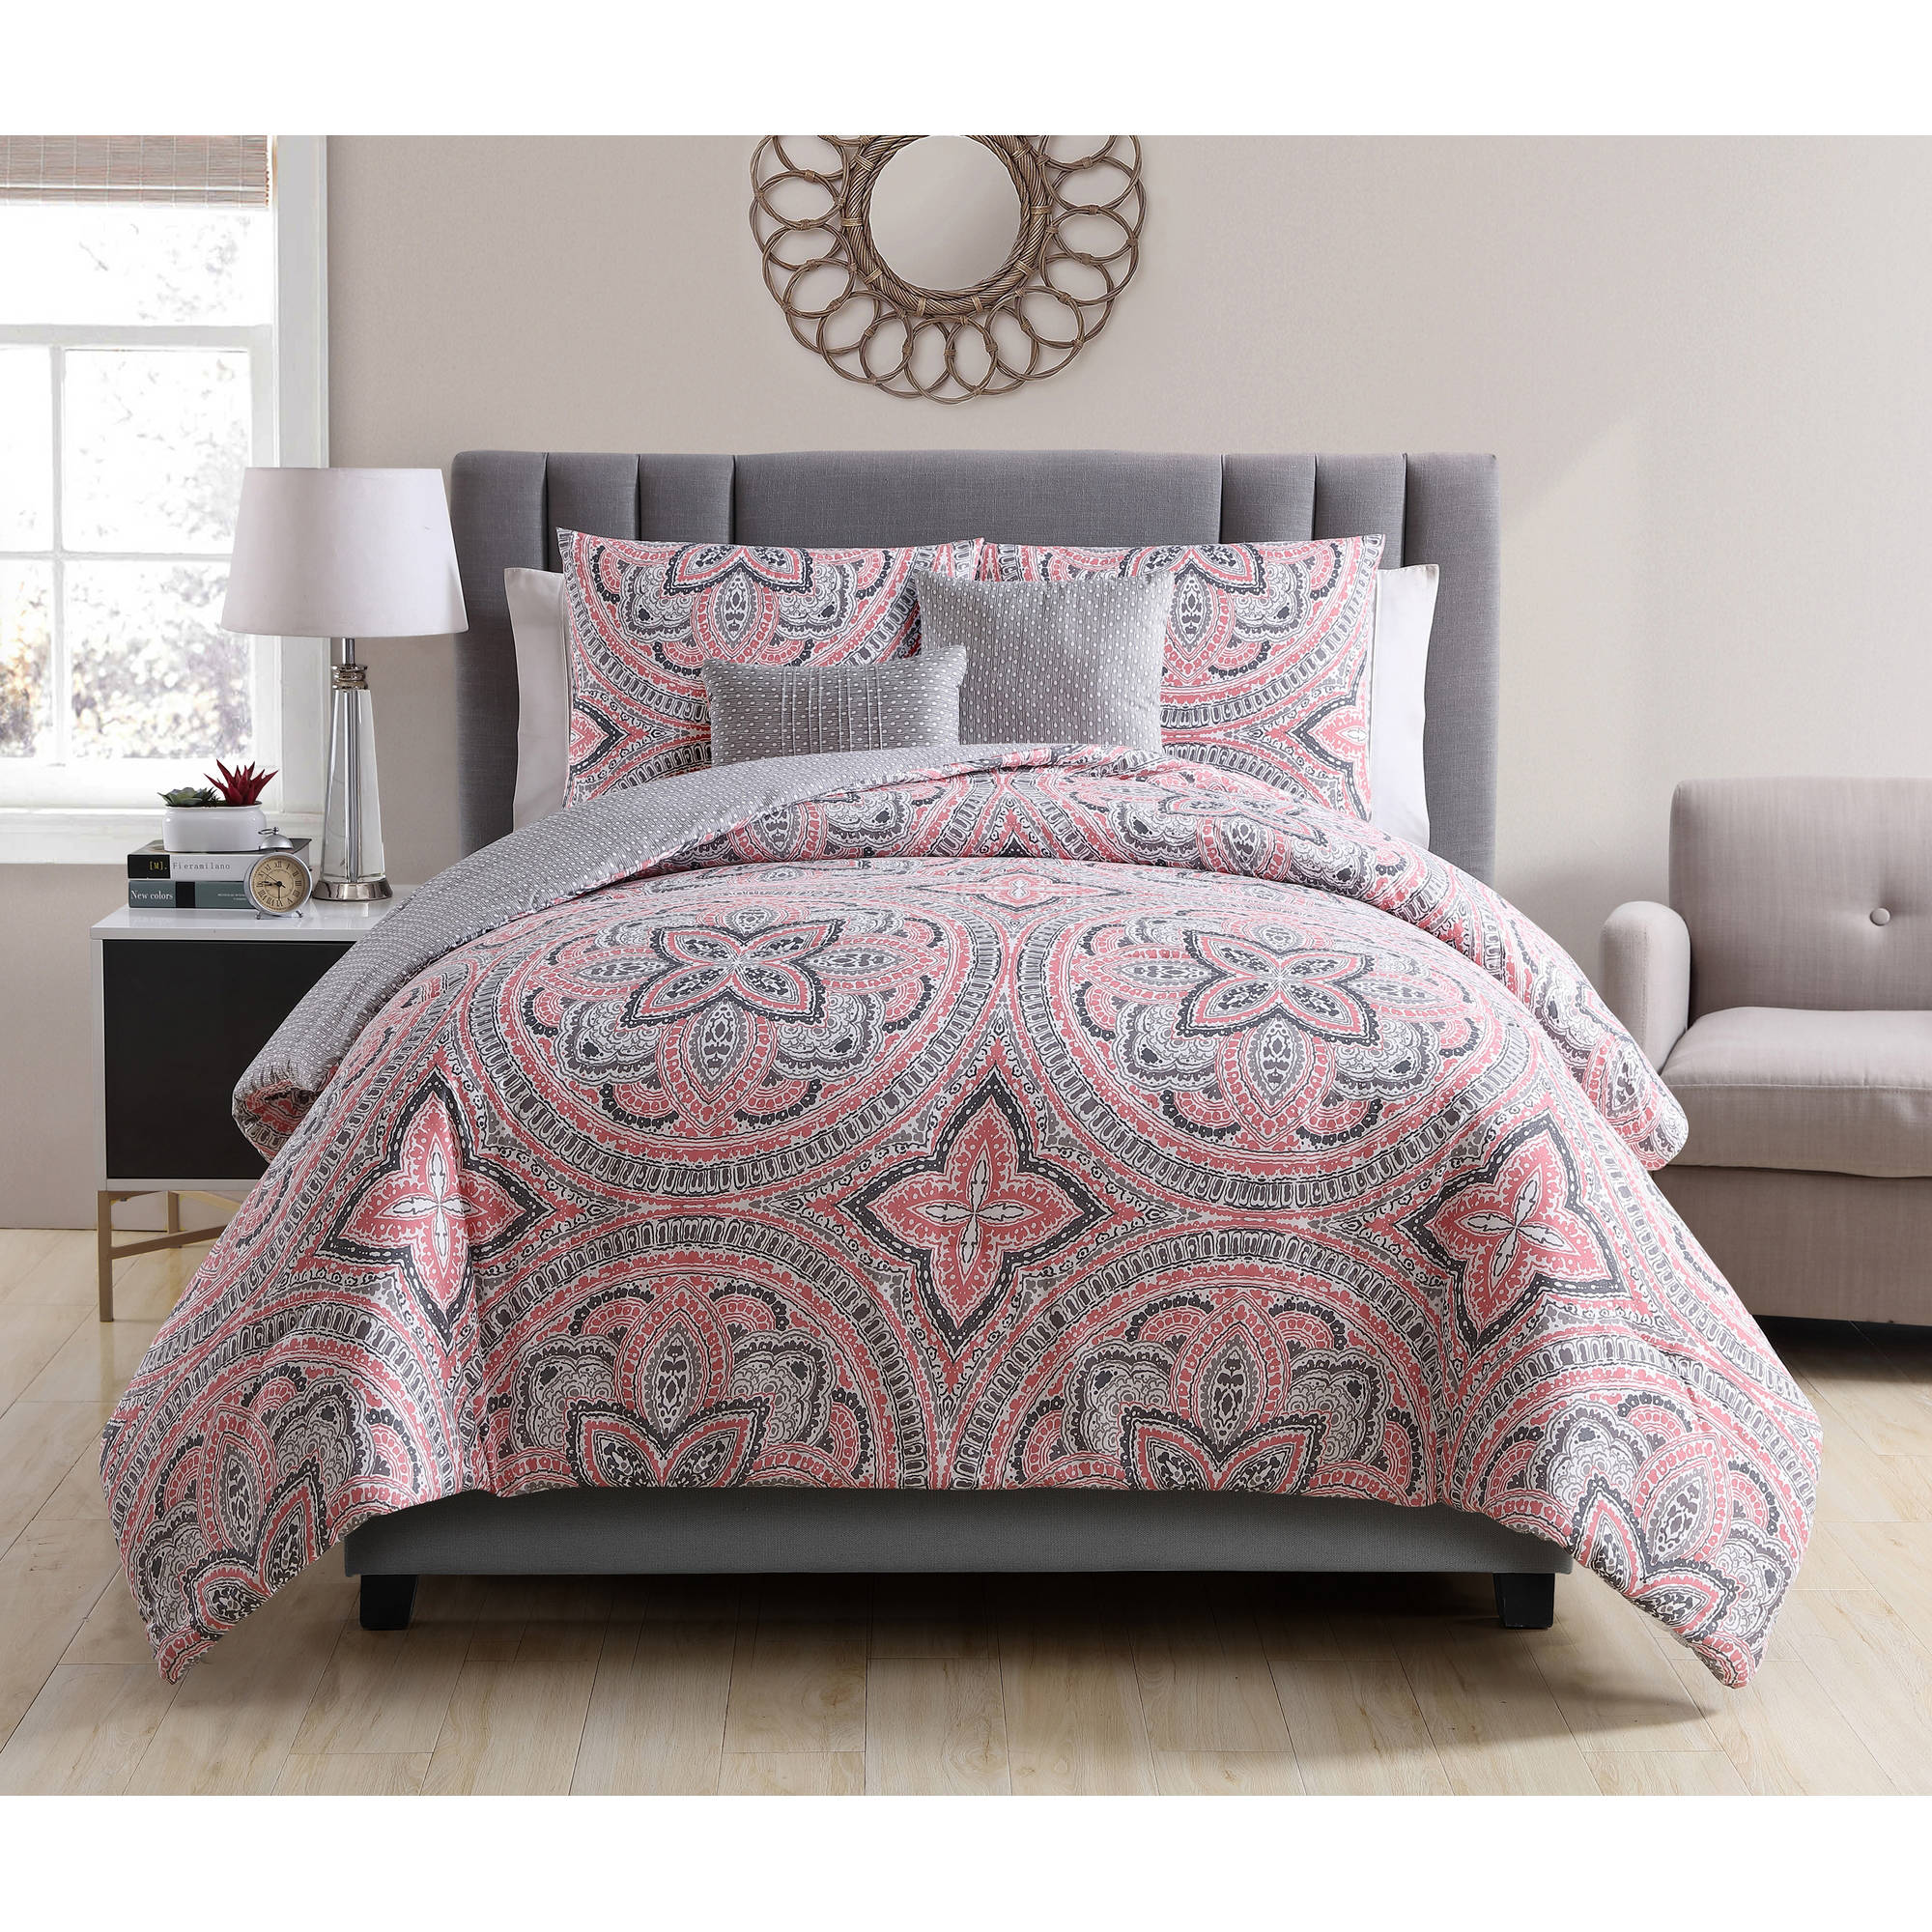 VCNY Home Multi-Color Medallion Printed 5-Piece Reversible Allison Bedding Comforter Set, Decorative Pillows Included